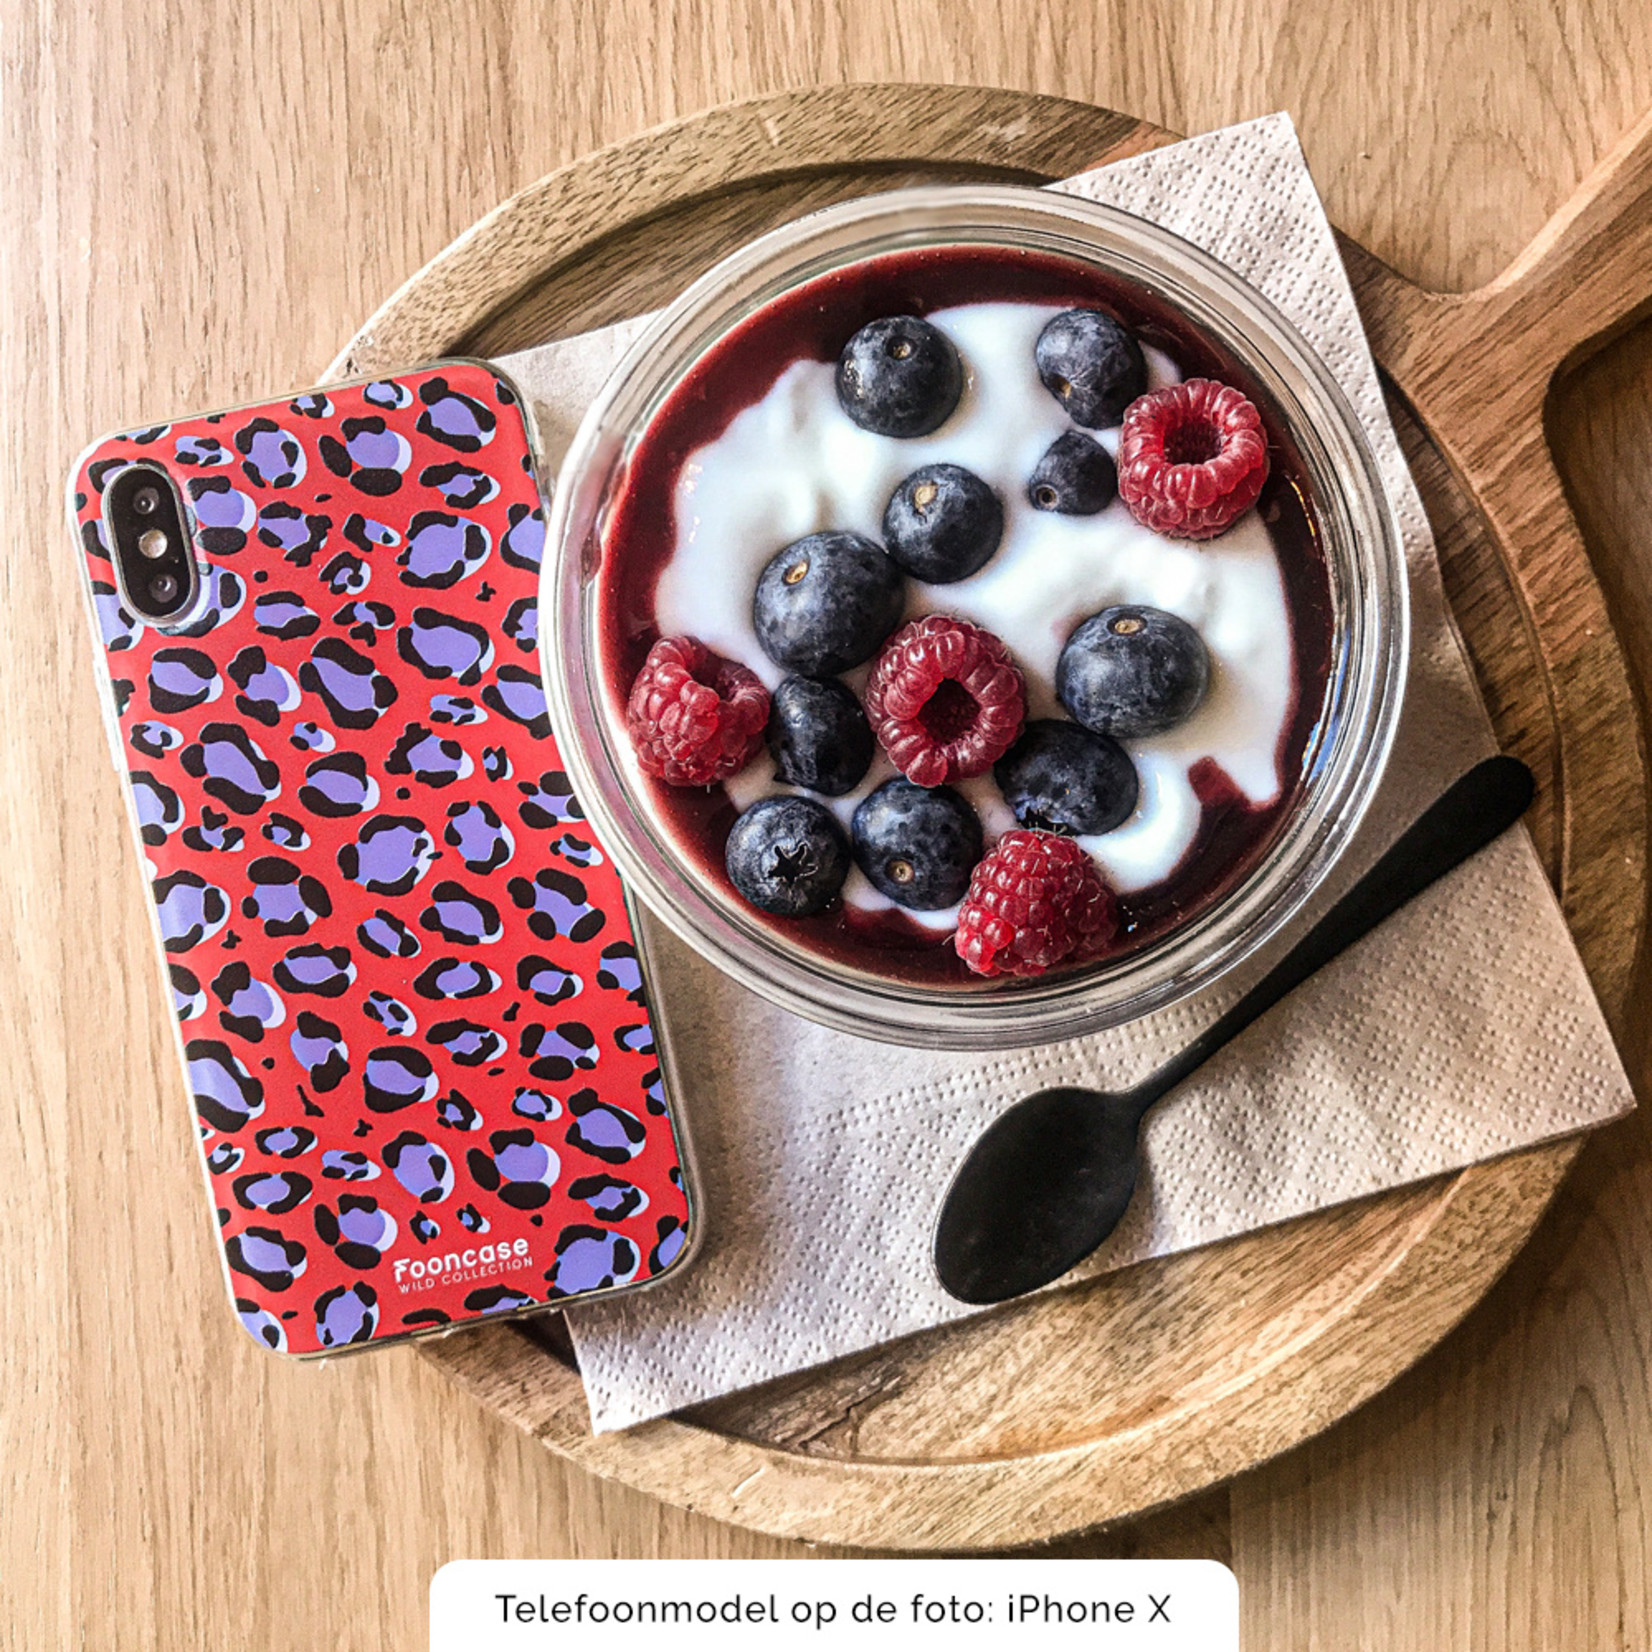 Samsung Galaxy A70 hoesje TPU Soft Case - Back Cover - WILD COLLECTION / Luipaard / Leopard print / Rood